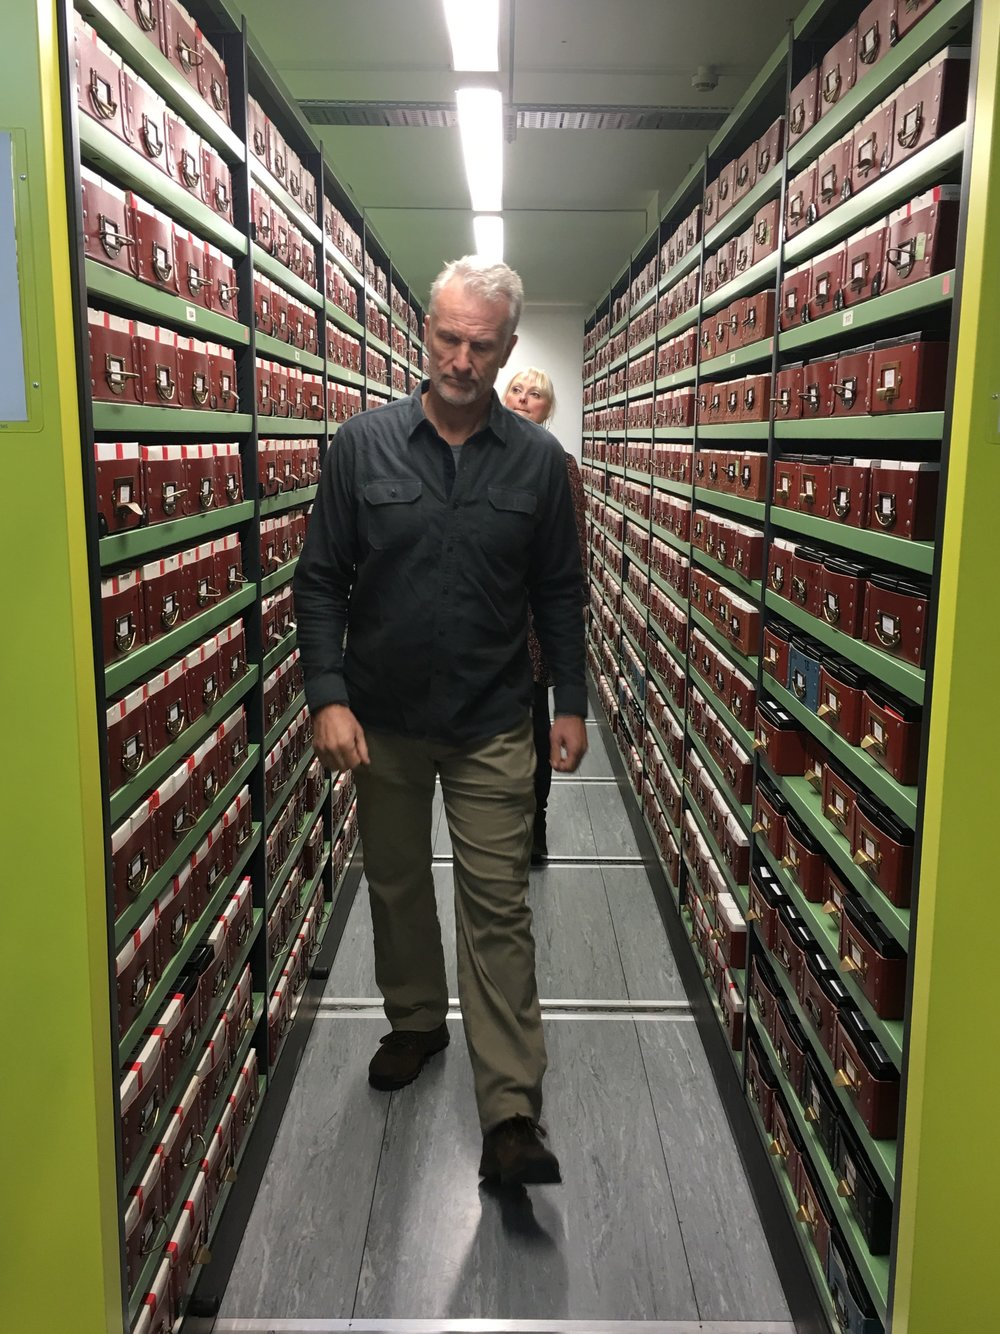 Scott Wolter at The National Archives Kew